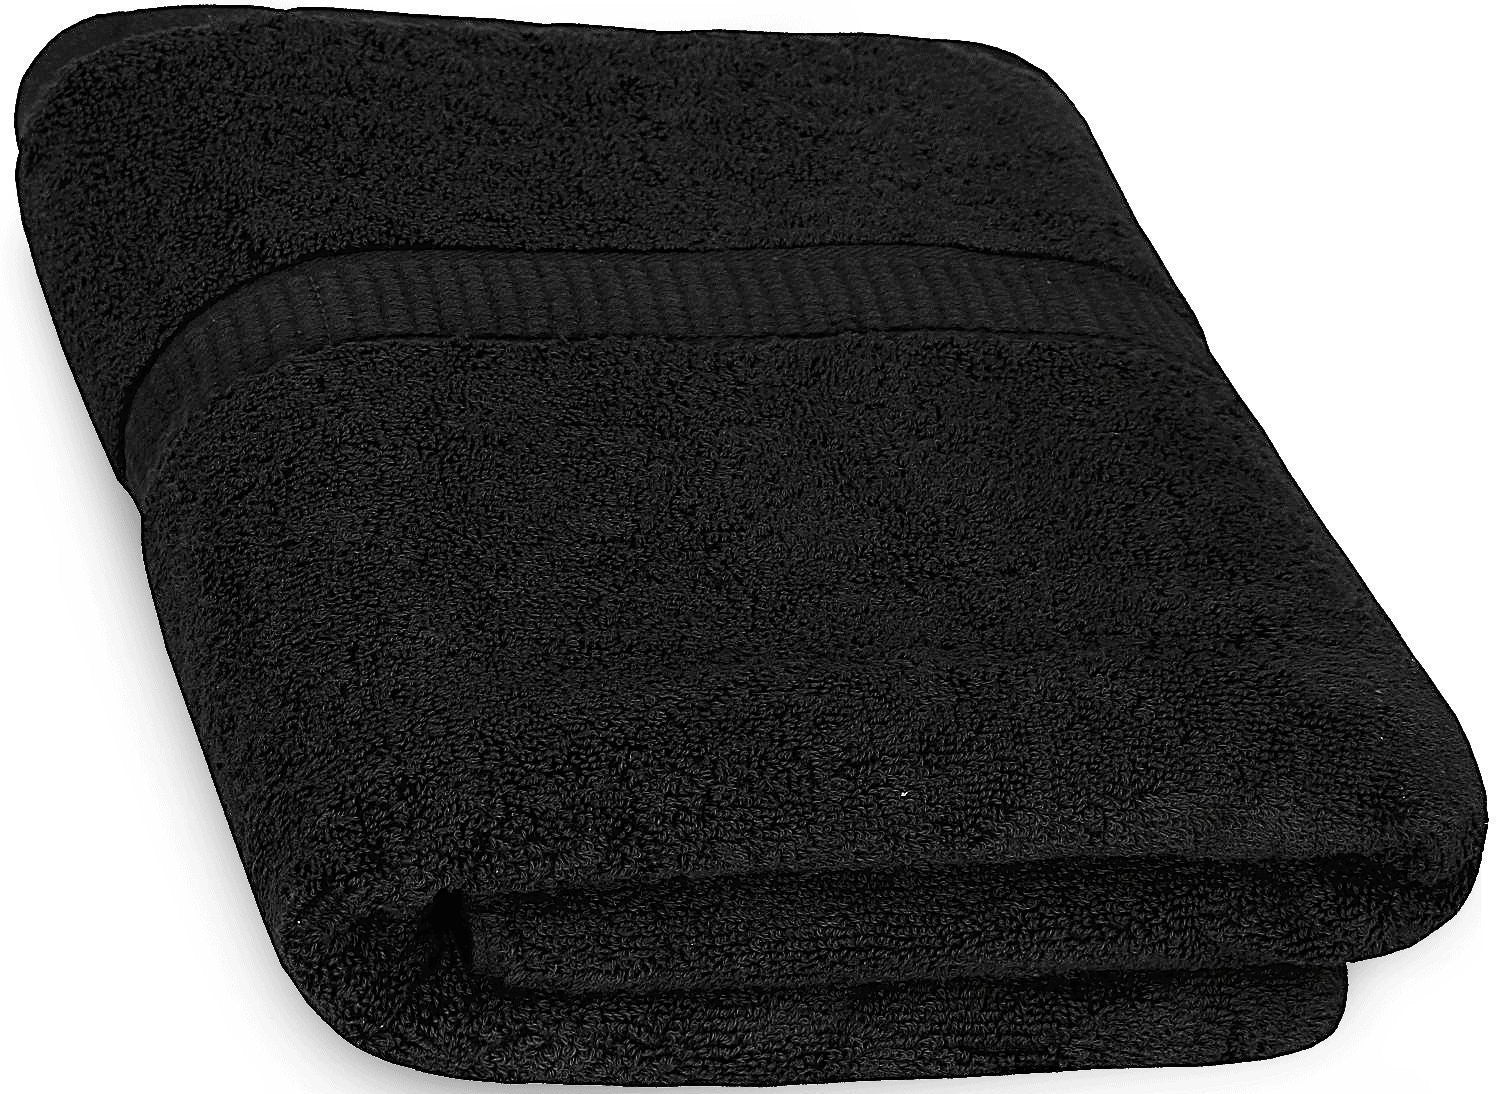 Cotton Luxury Bath Towel - Black